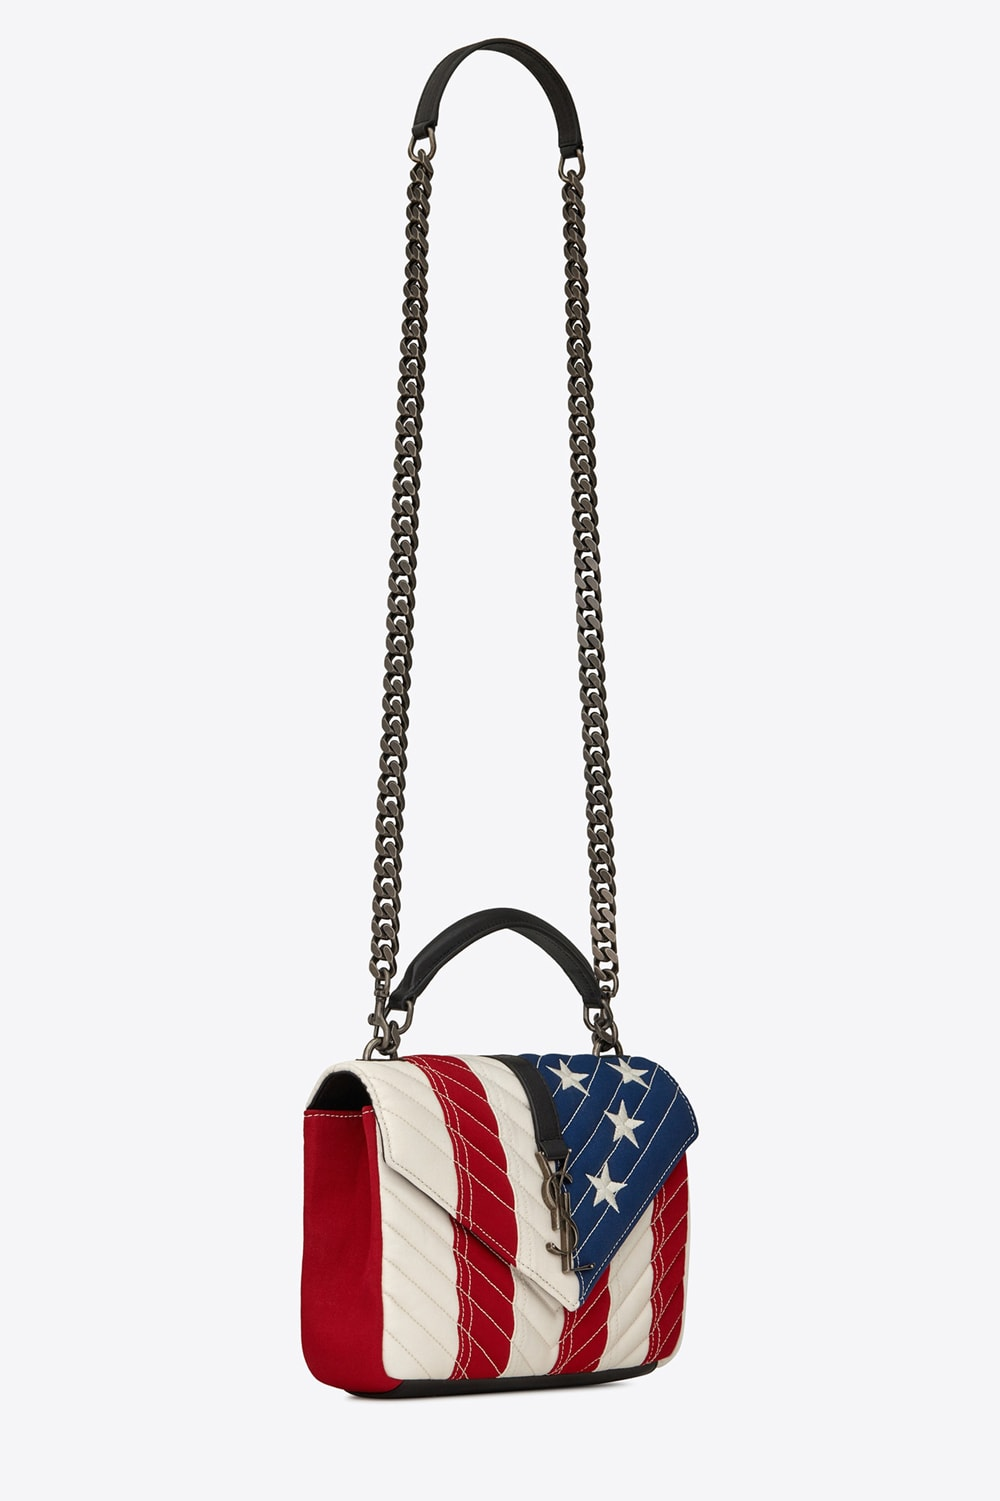 e2e1809178 It's a bird, it's a plane, it's flying flag? Nope it's just the Saint  Laurent Medium College Bag in American Flag Patchwork. You're not seeing  stars my ...